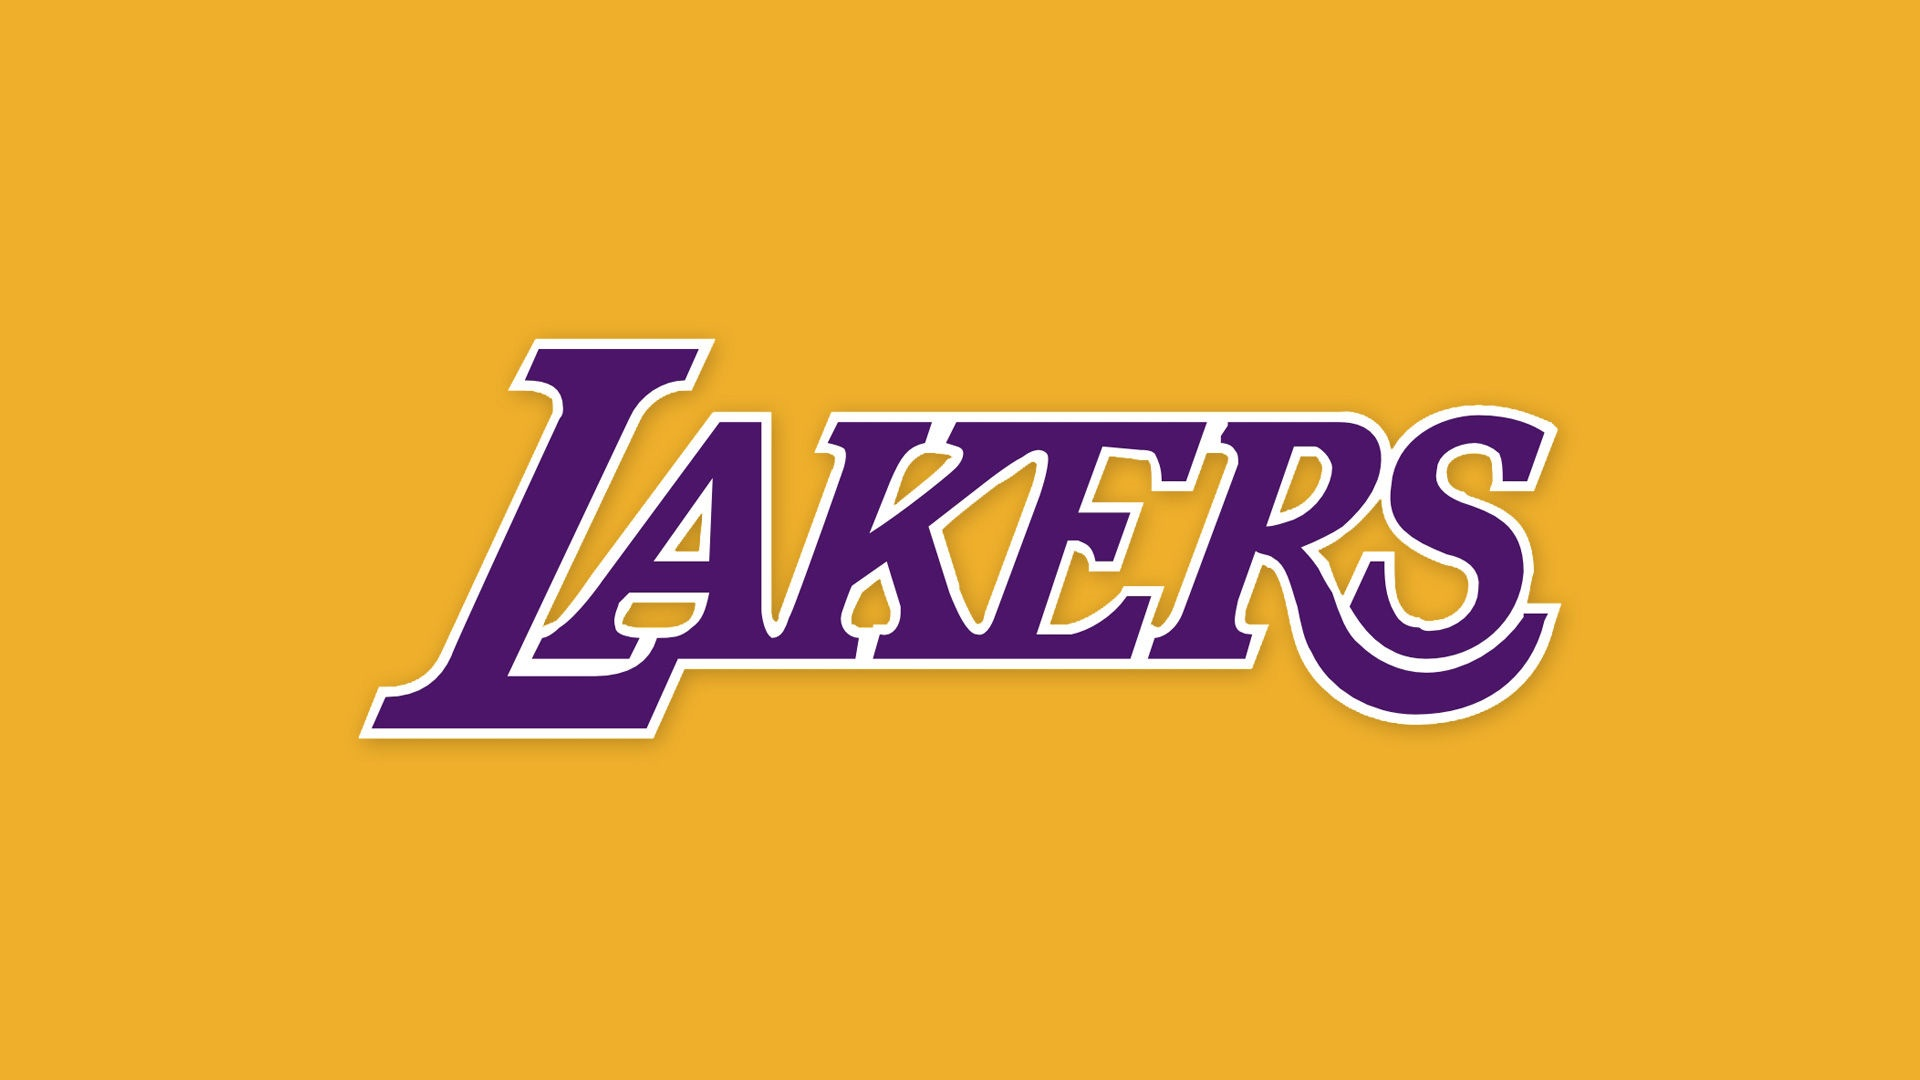 Los Angeles Lakers Wallpapers  Wallpaper  1920x1080